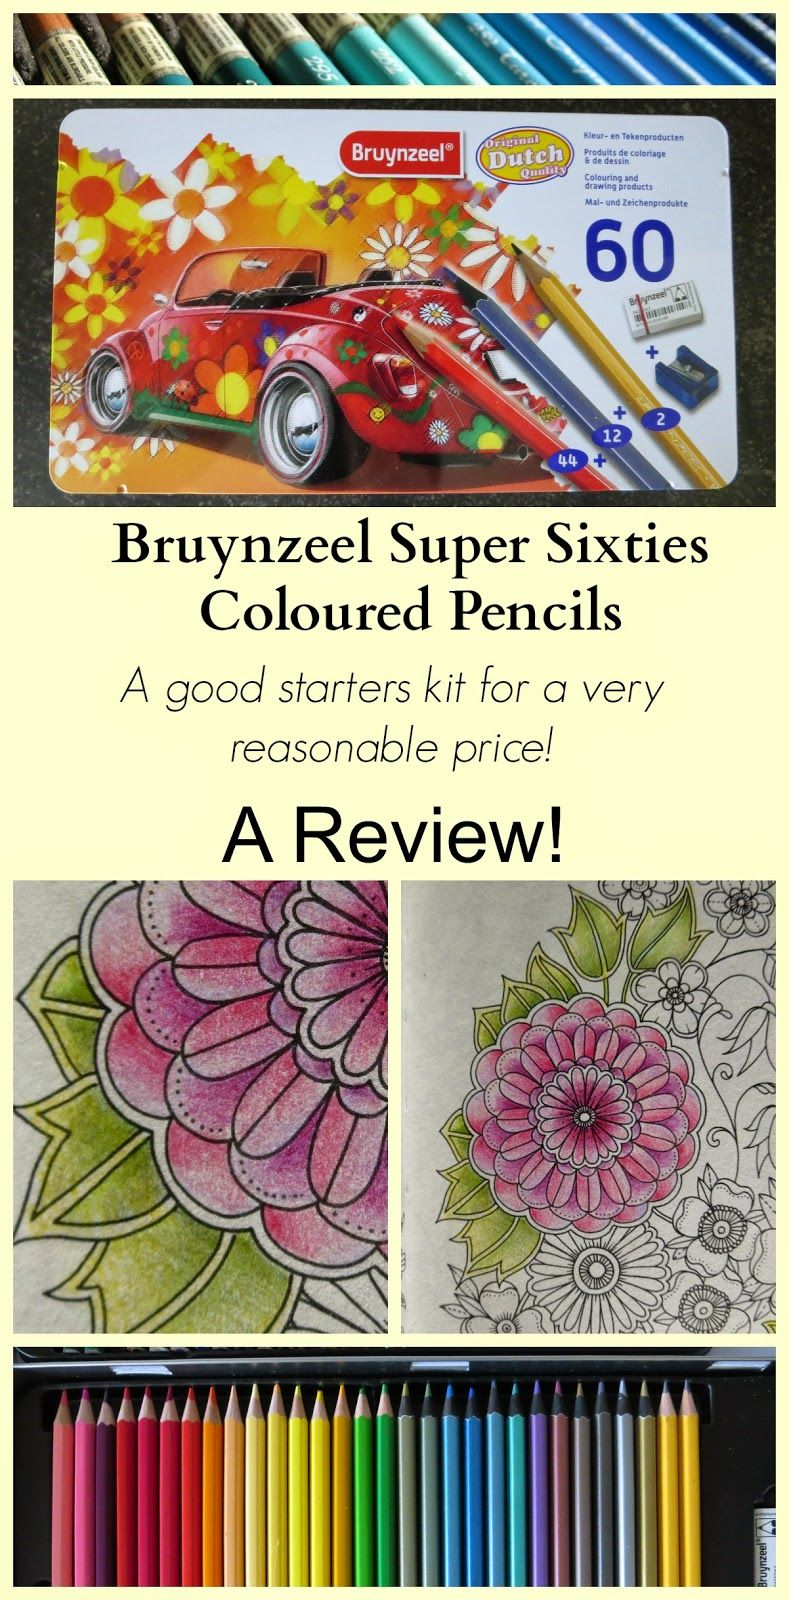 Passion For Pencils Review Bruynzeel Super Sixties Coloured